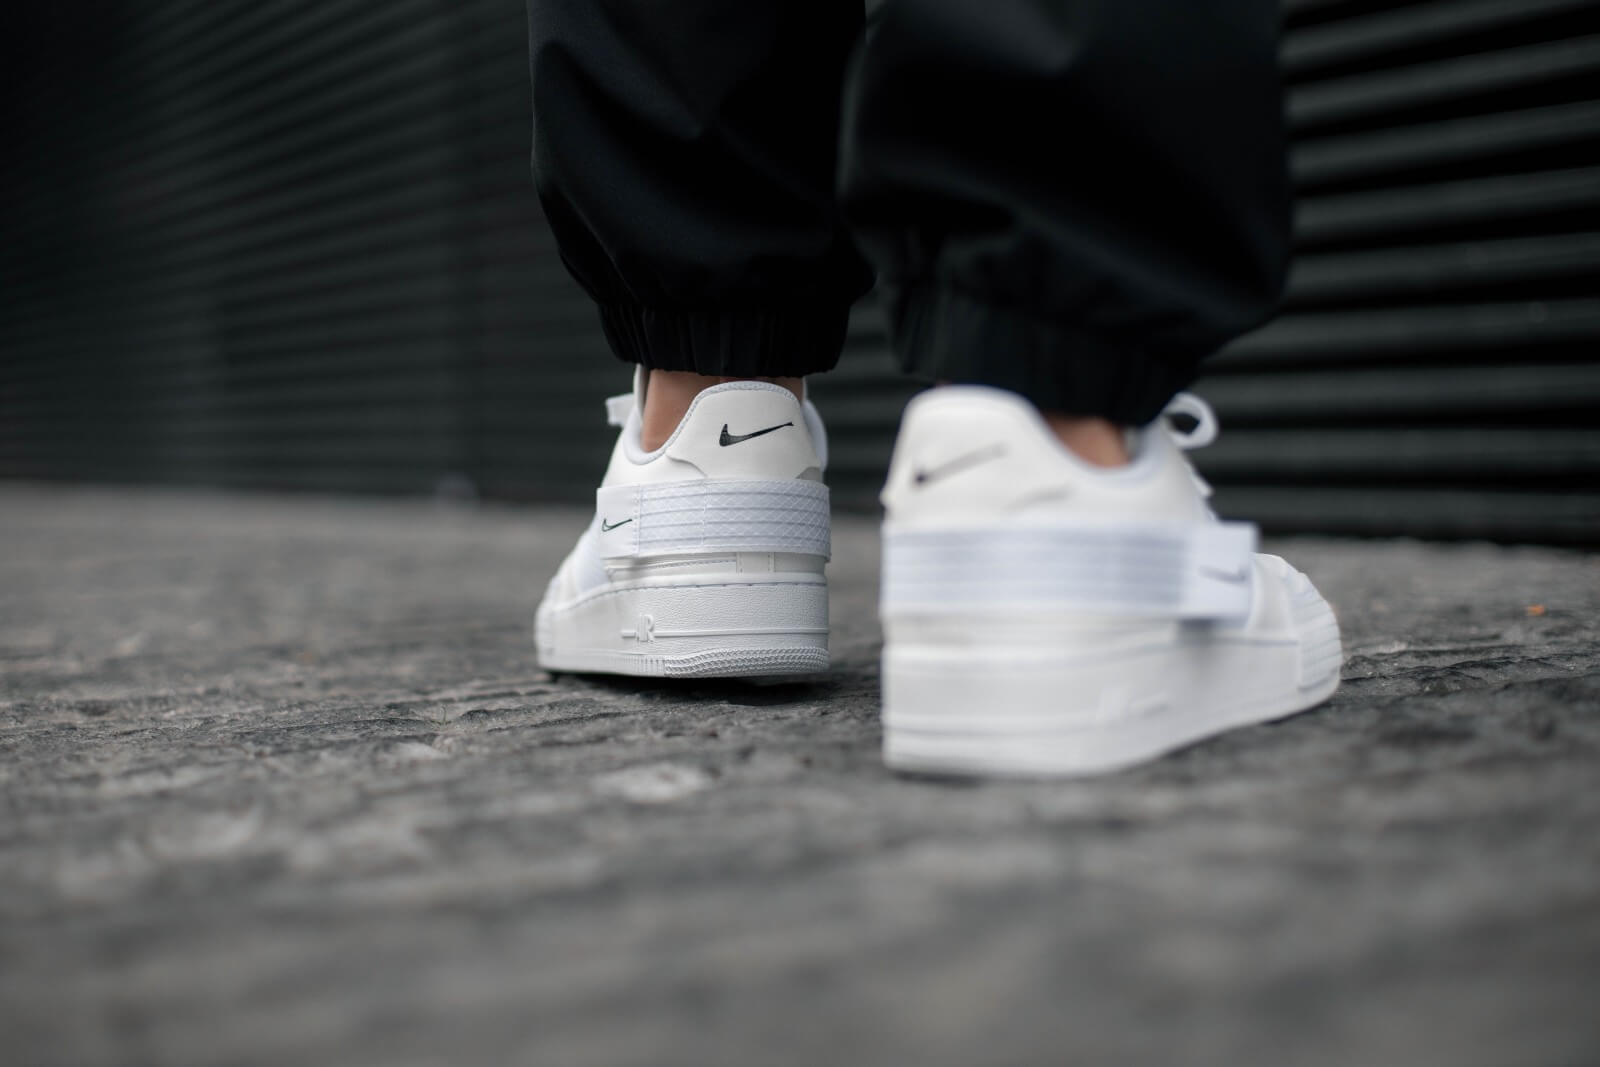 Nike Air Force 1 Type White/White - CQ2344-101